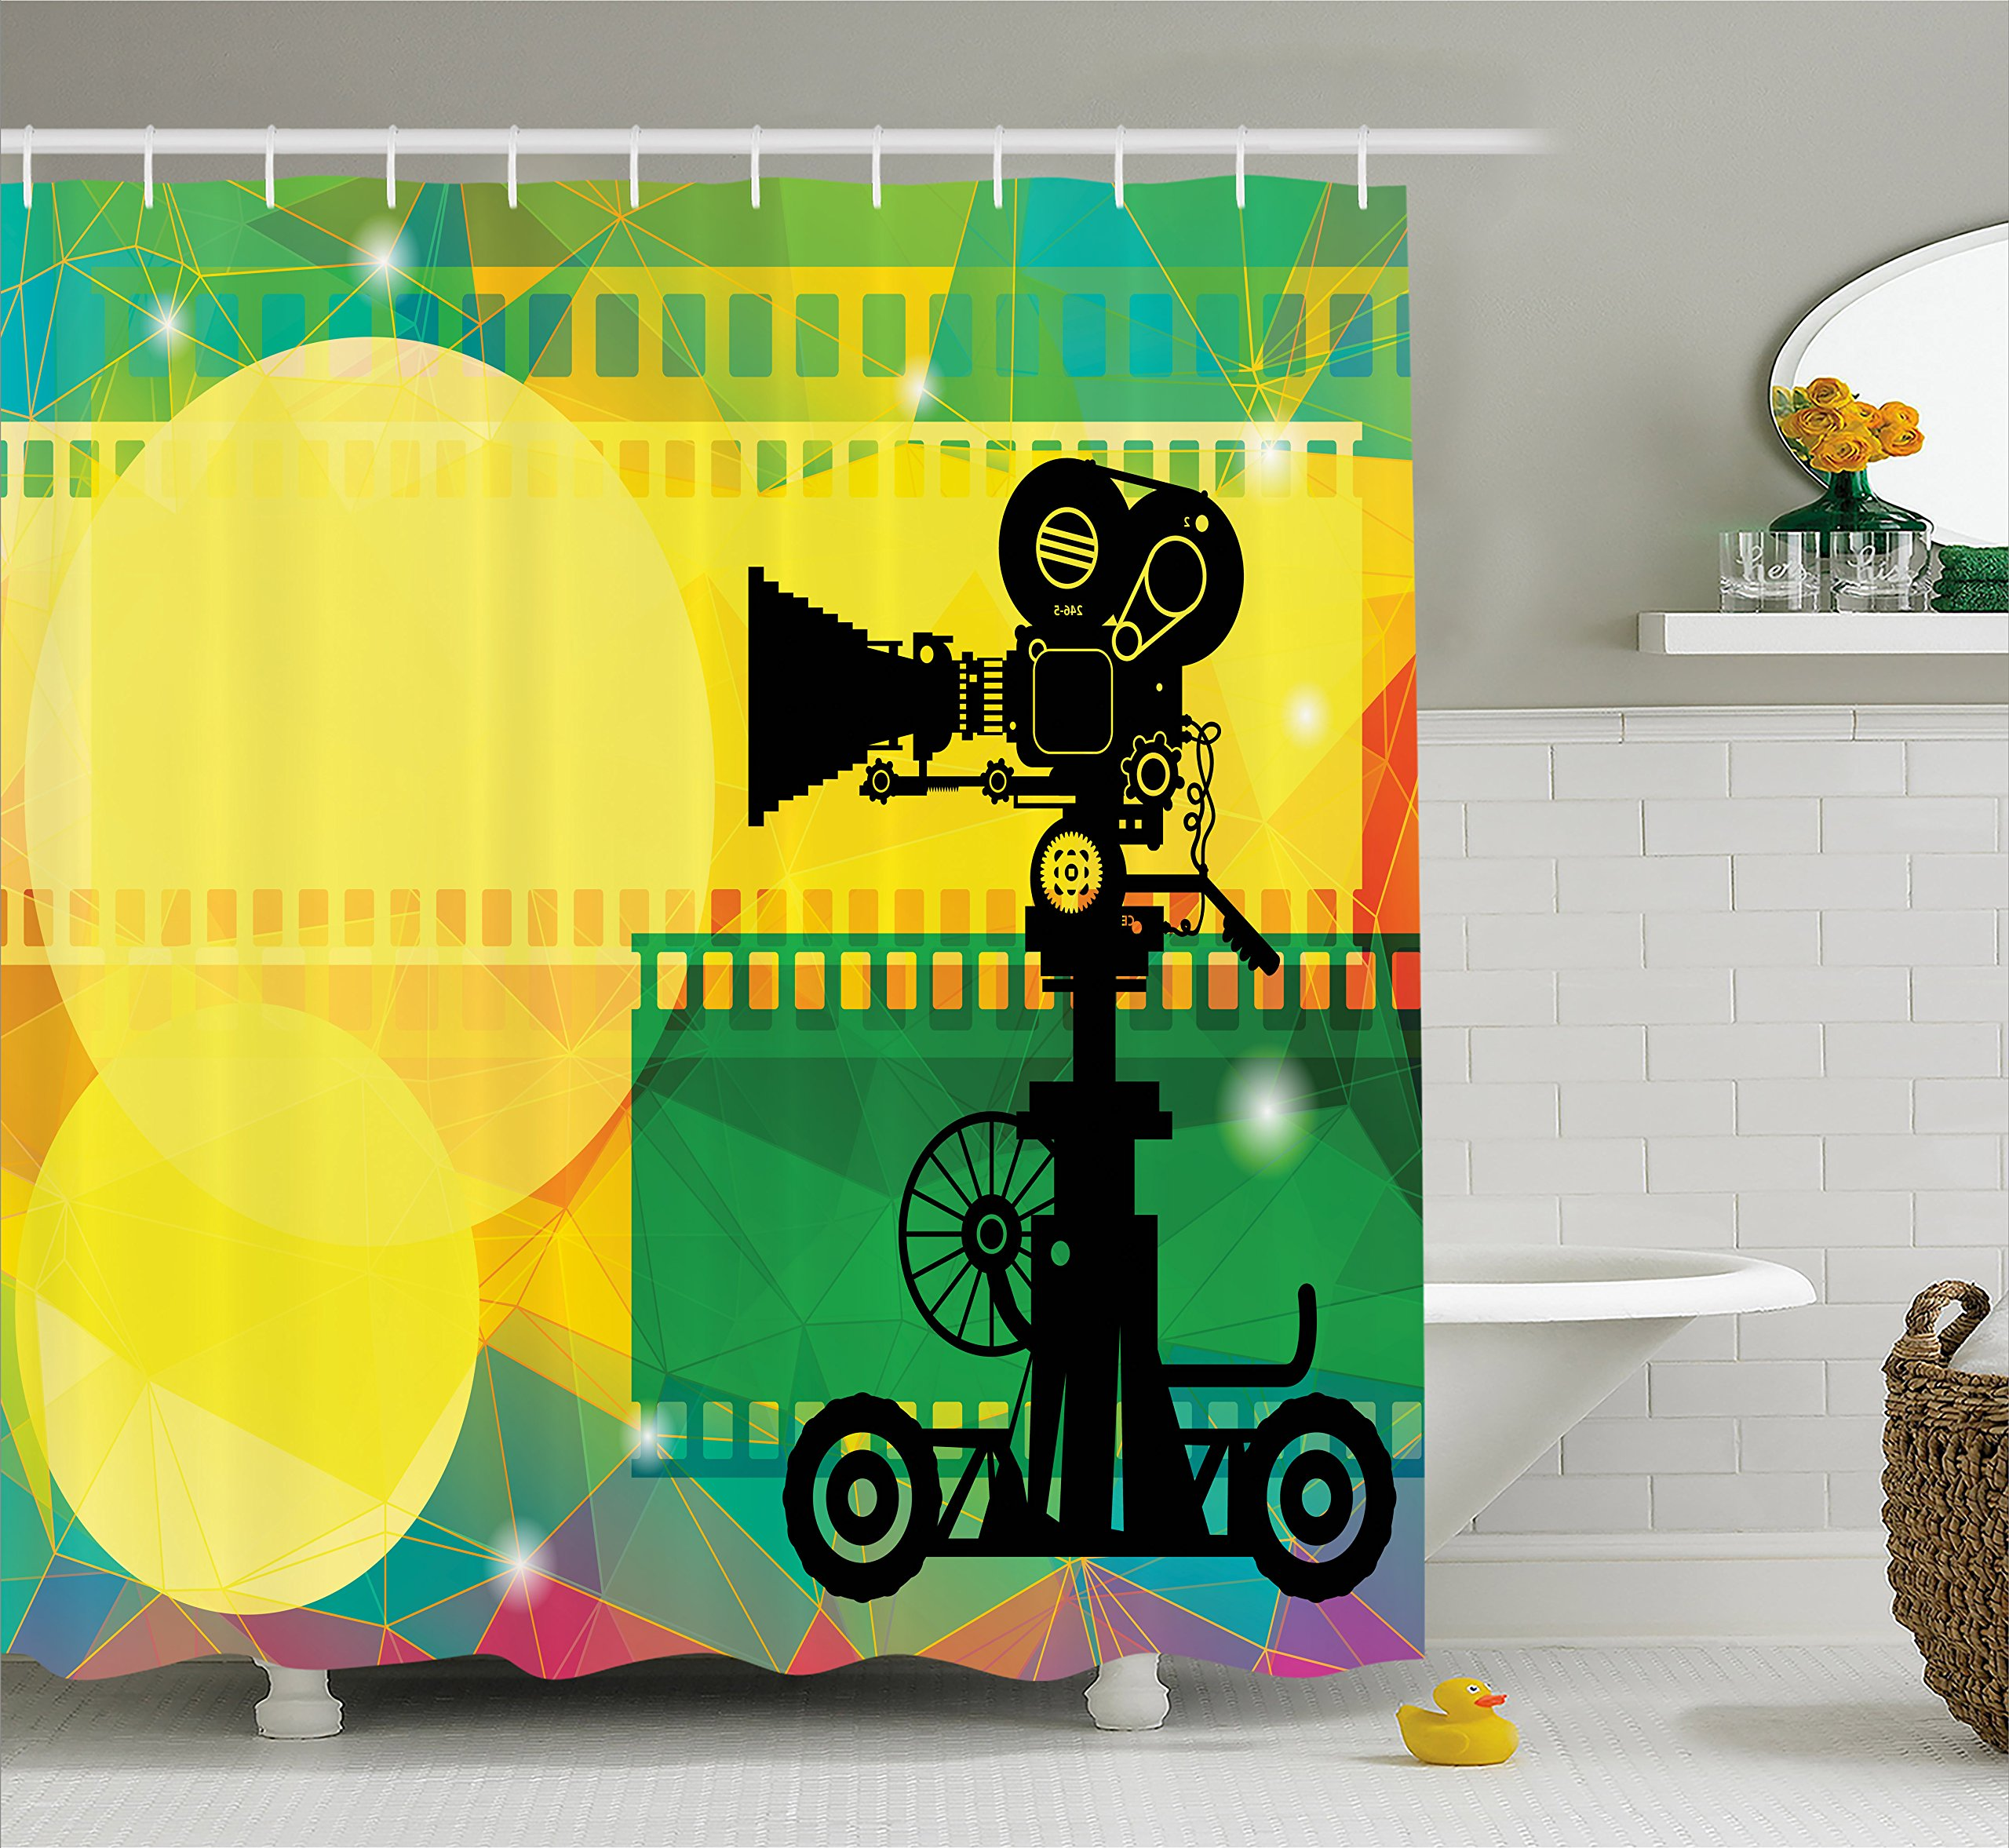 Ambesonne Movie Theater Shower Curtain, Abstract and Vibrant Colored Composition with Strips Projection Silhouette, Cloth Fabric Bathroom Decor Set with Hooks, 70 Inches, Multicolor